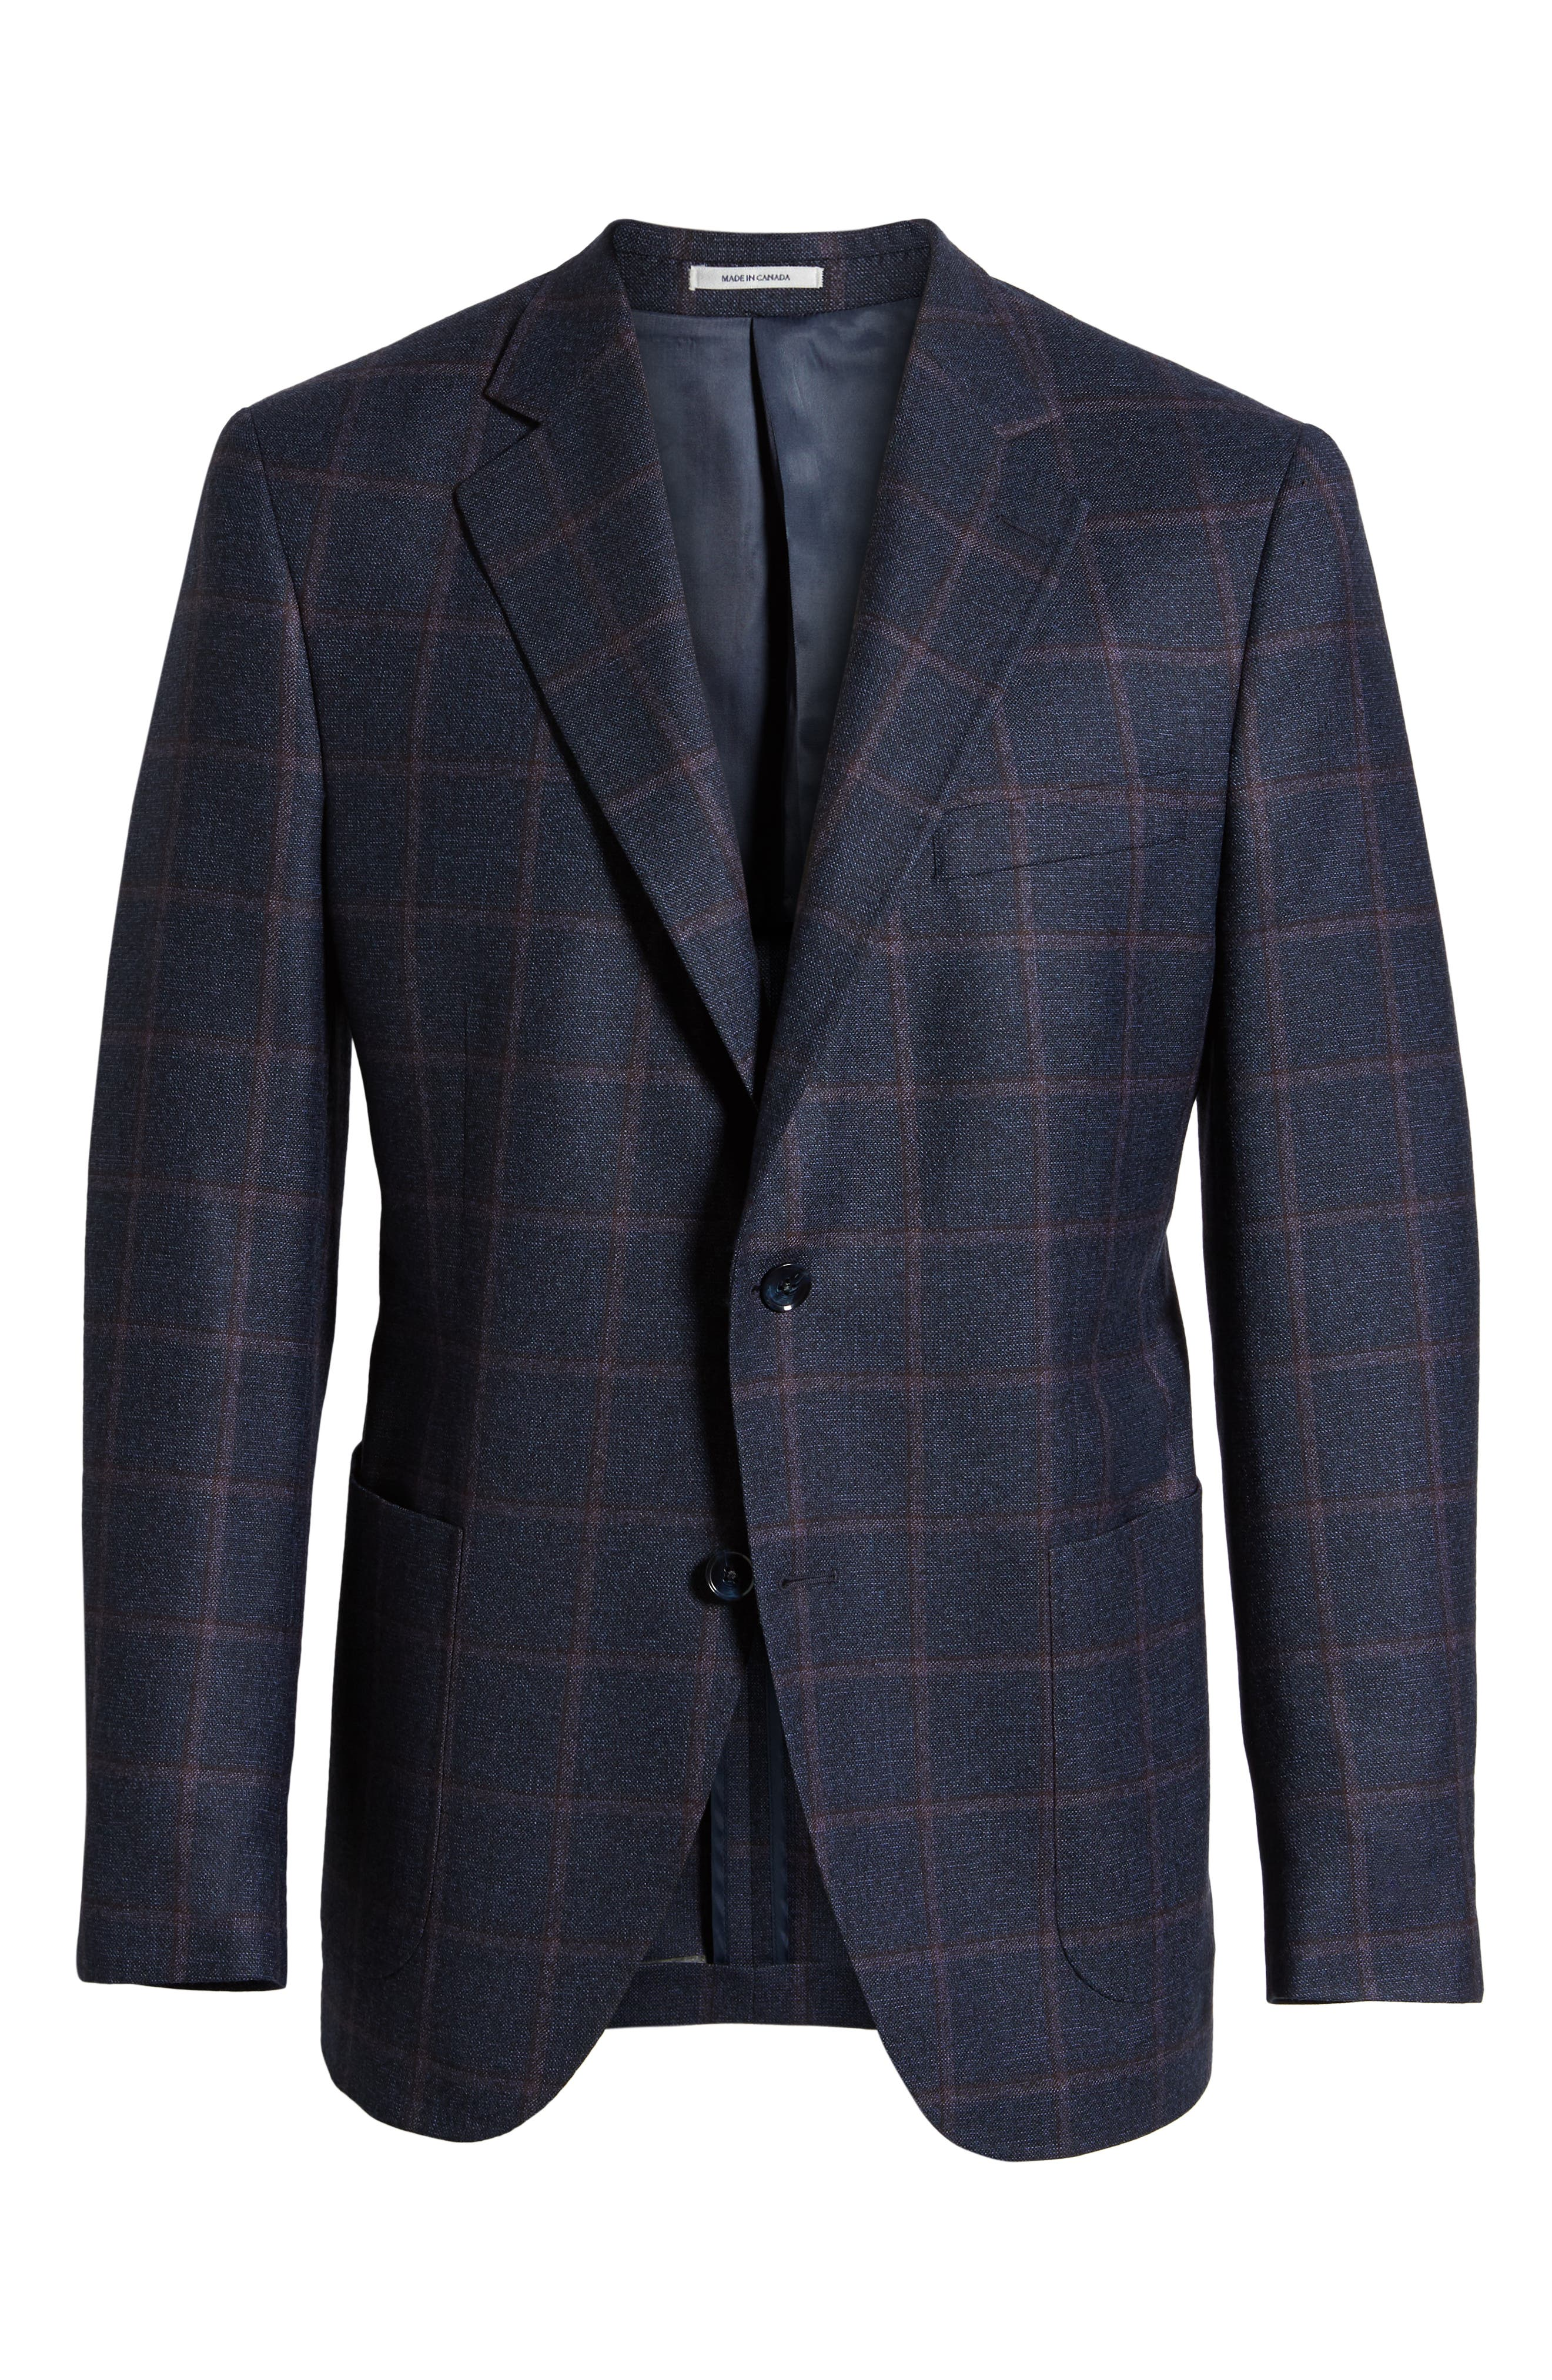 PETER MILLAR,                             Hyperlight Classic Fit Wool Sport Coat,                             Alternate thumbnail 5, color,                             410